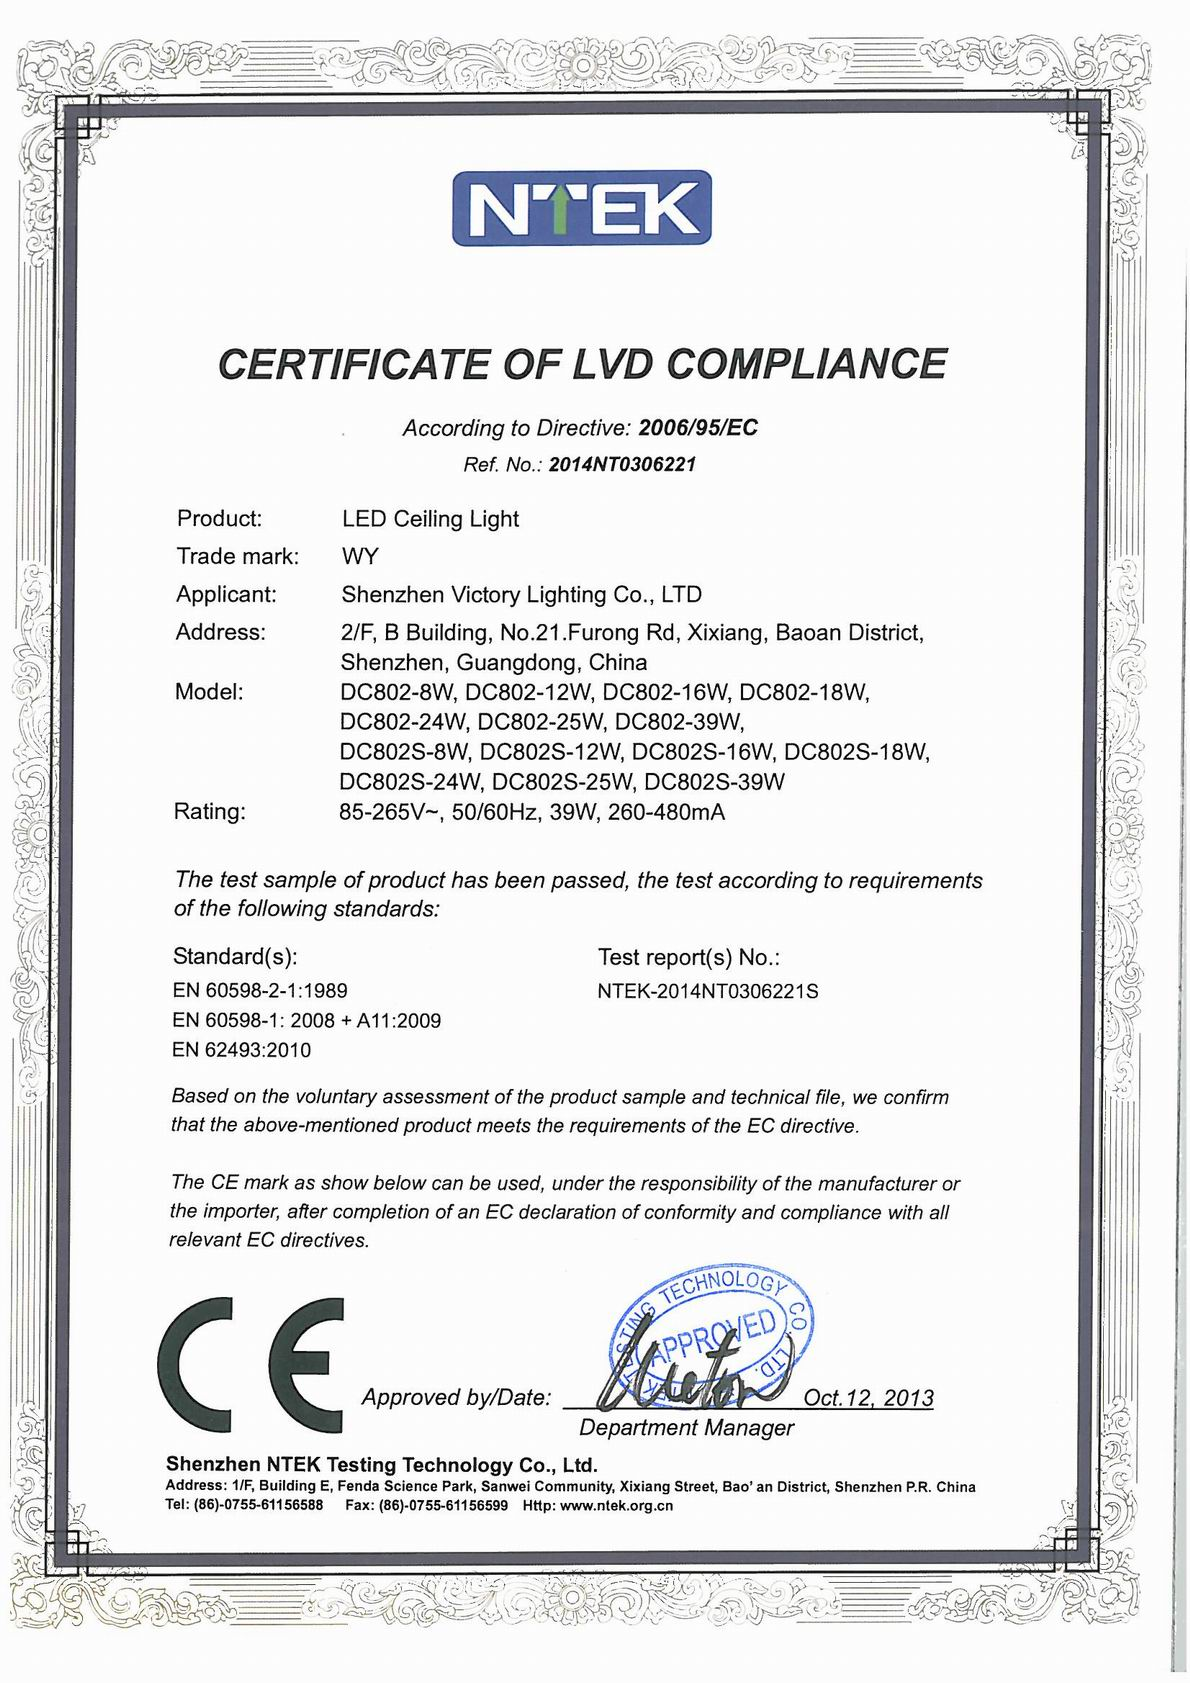 LED CEILING LIGHT LVD CERTIFICATION